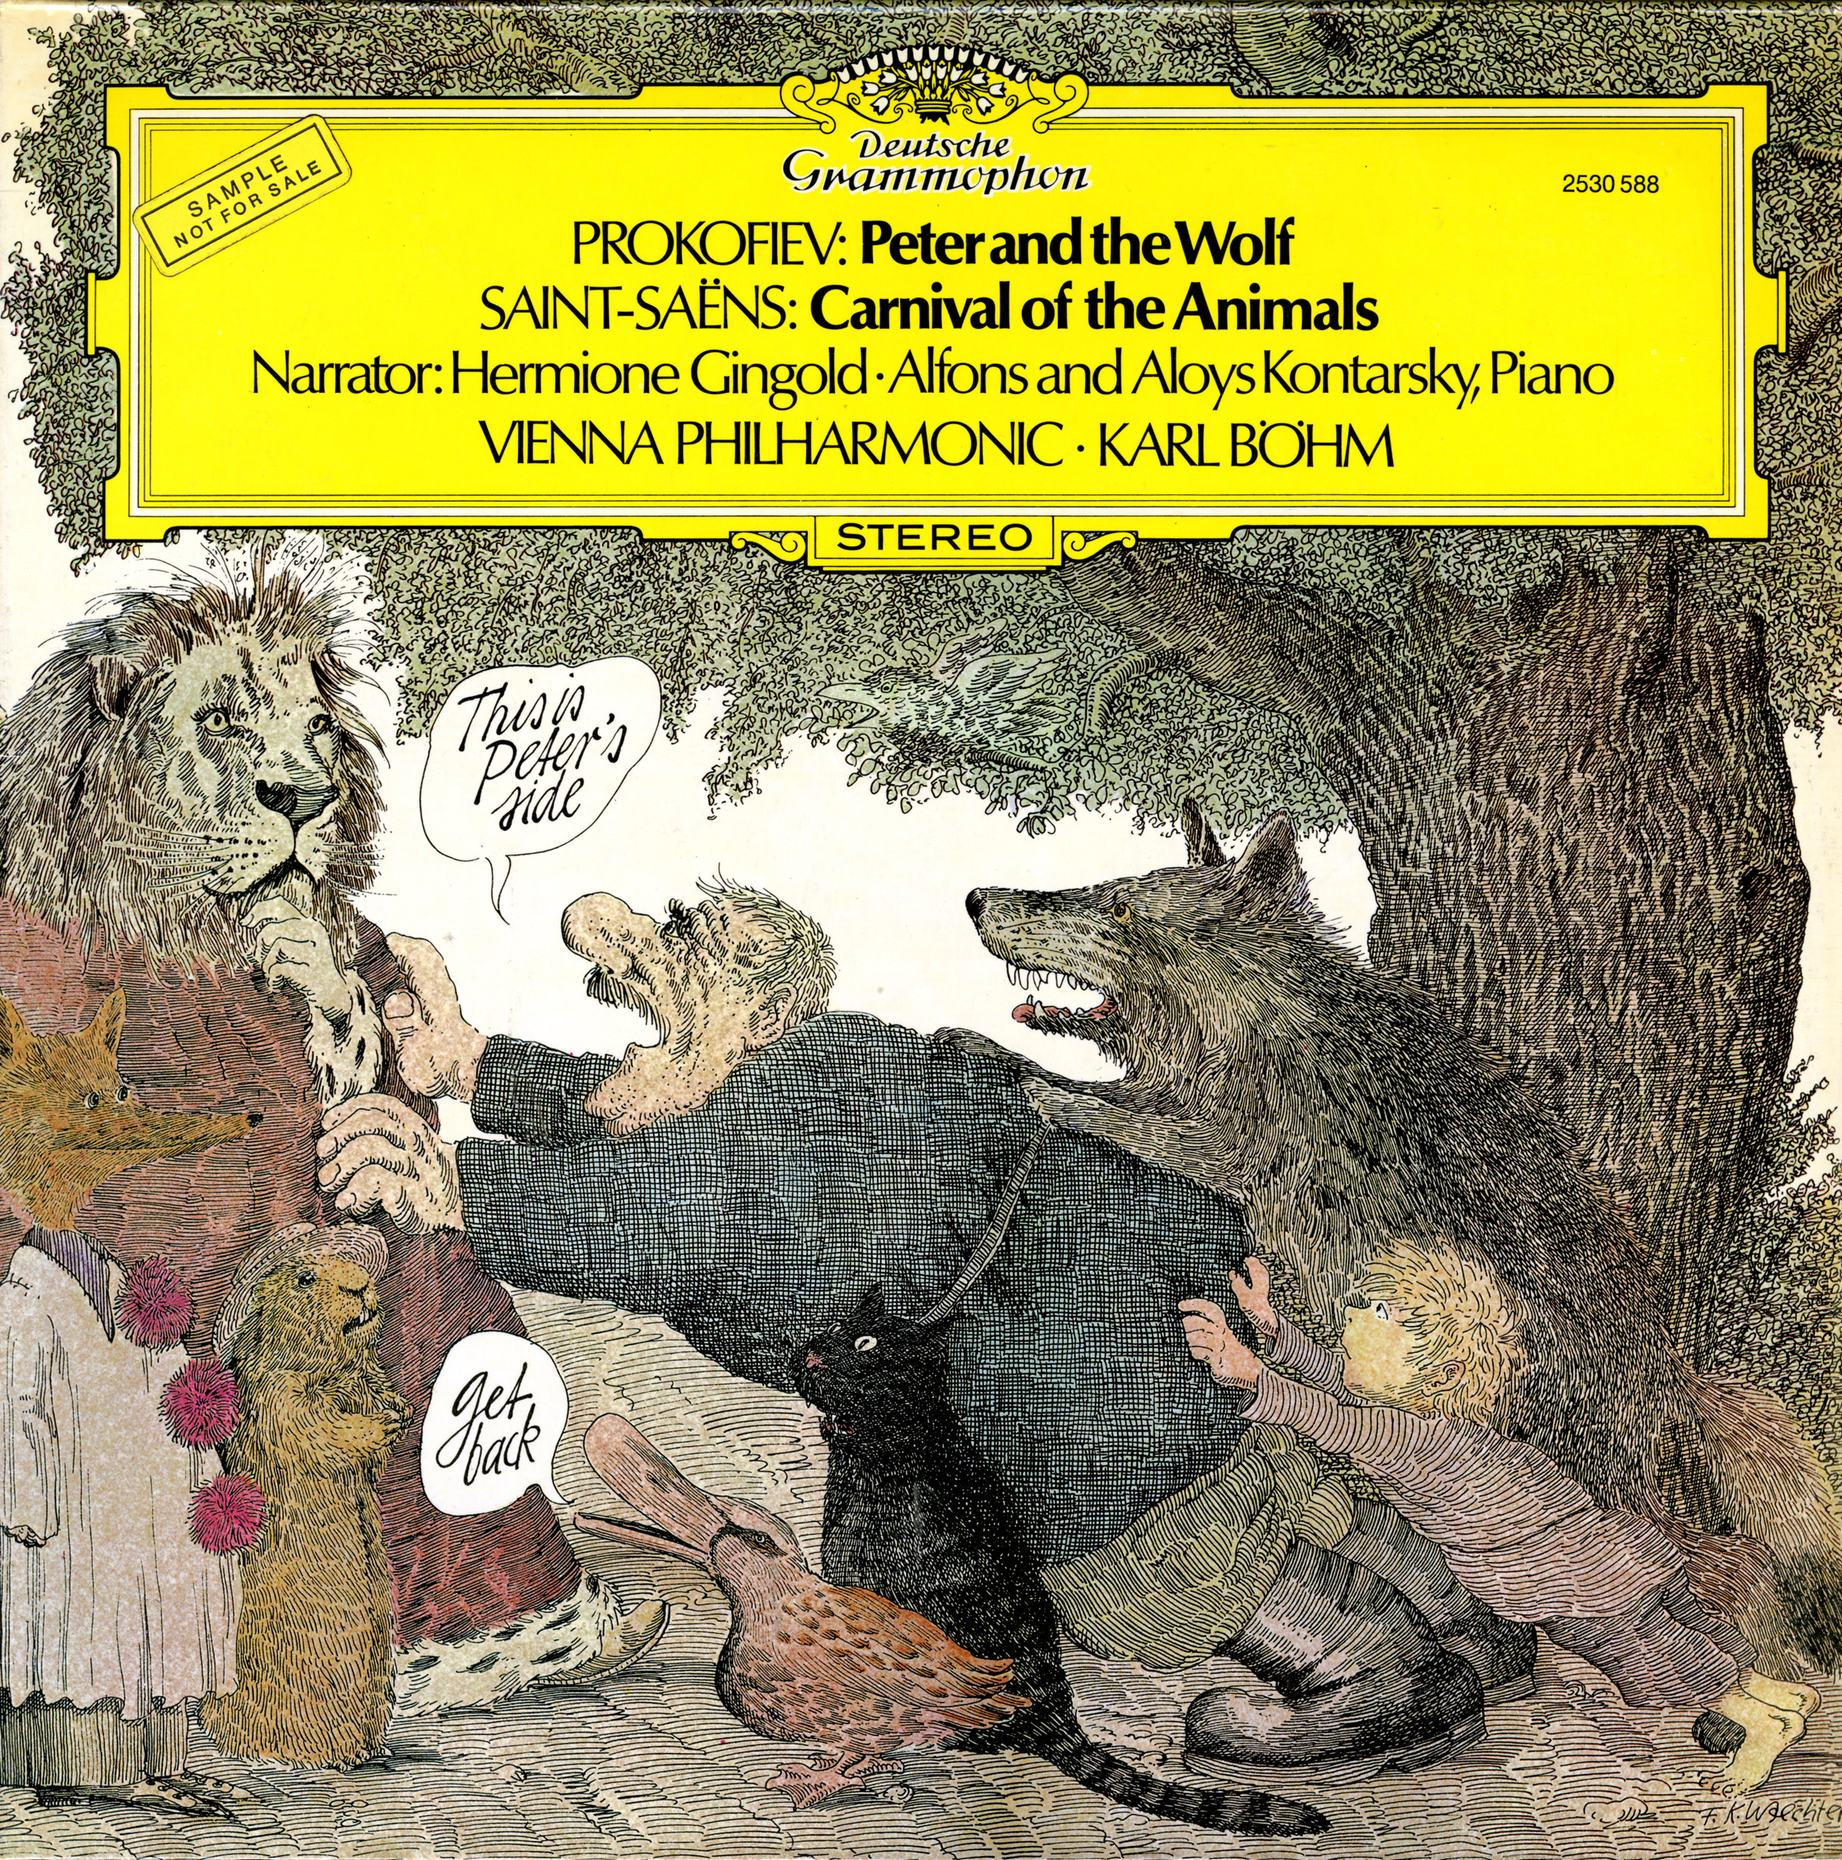 Beautiful and Disturbing 'Peter and the Wolf' Album Covers - NYPR Archives & Preservation - WNYC